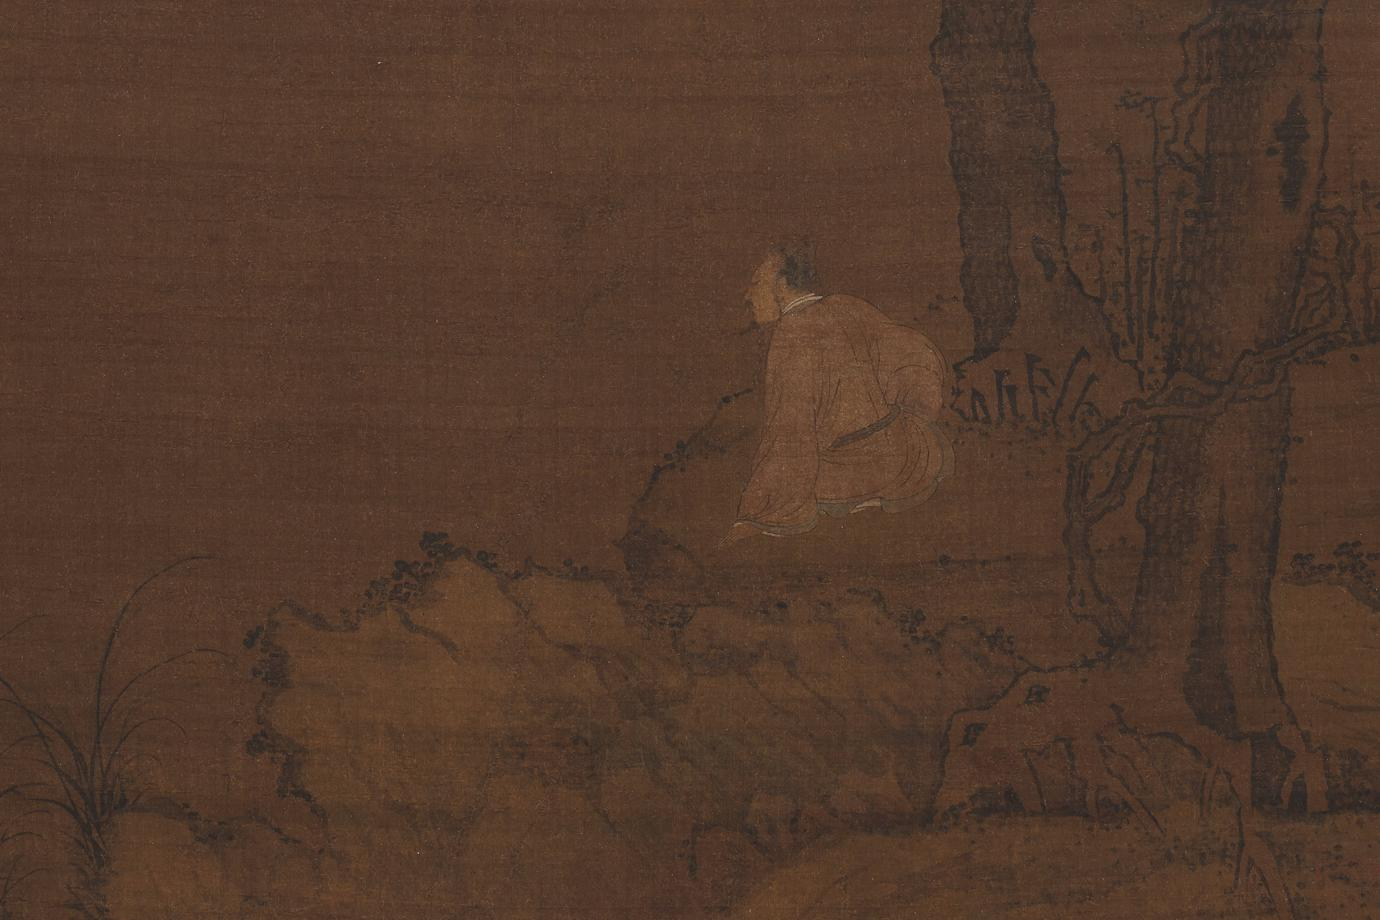 male figure seated below two pine trees on rocky embankment overlooking choppy water, grasses